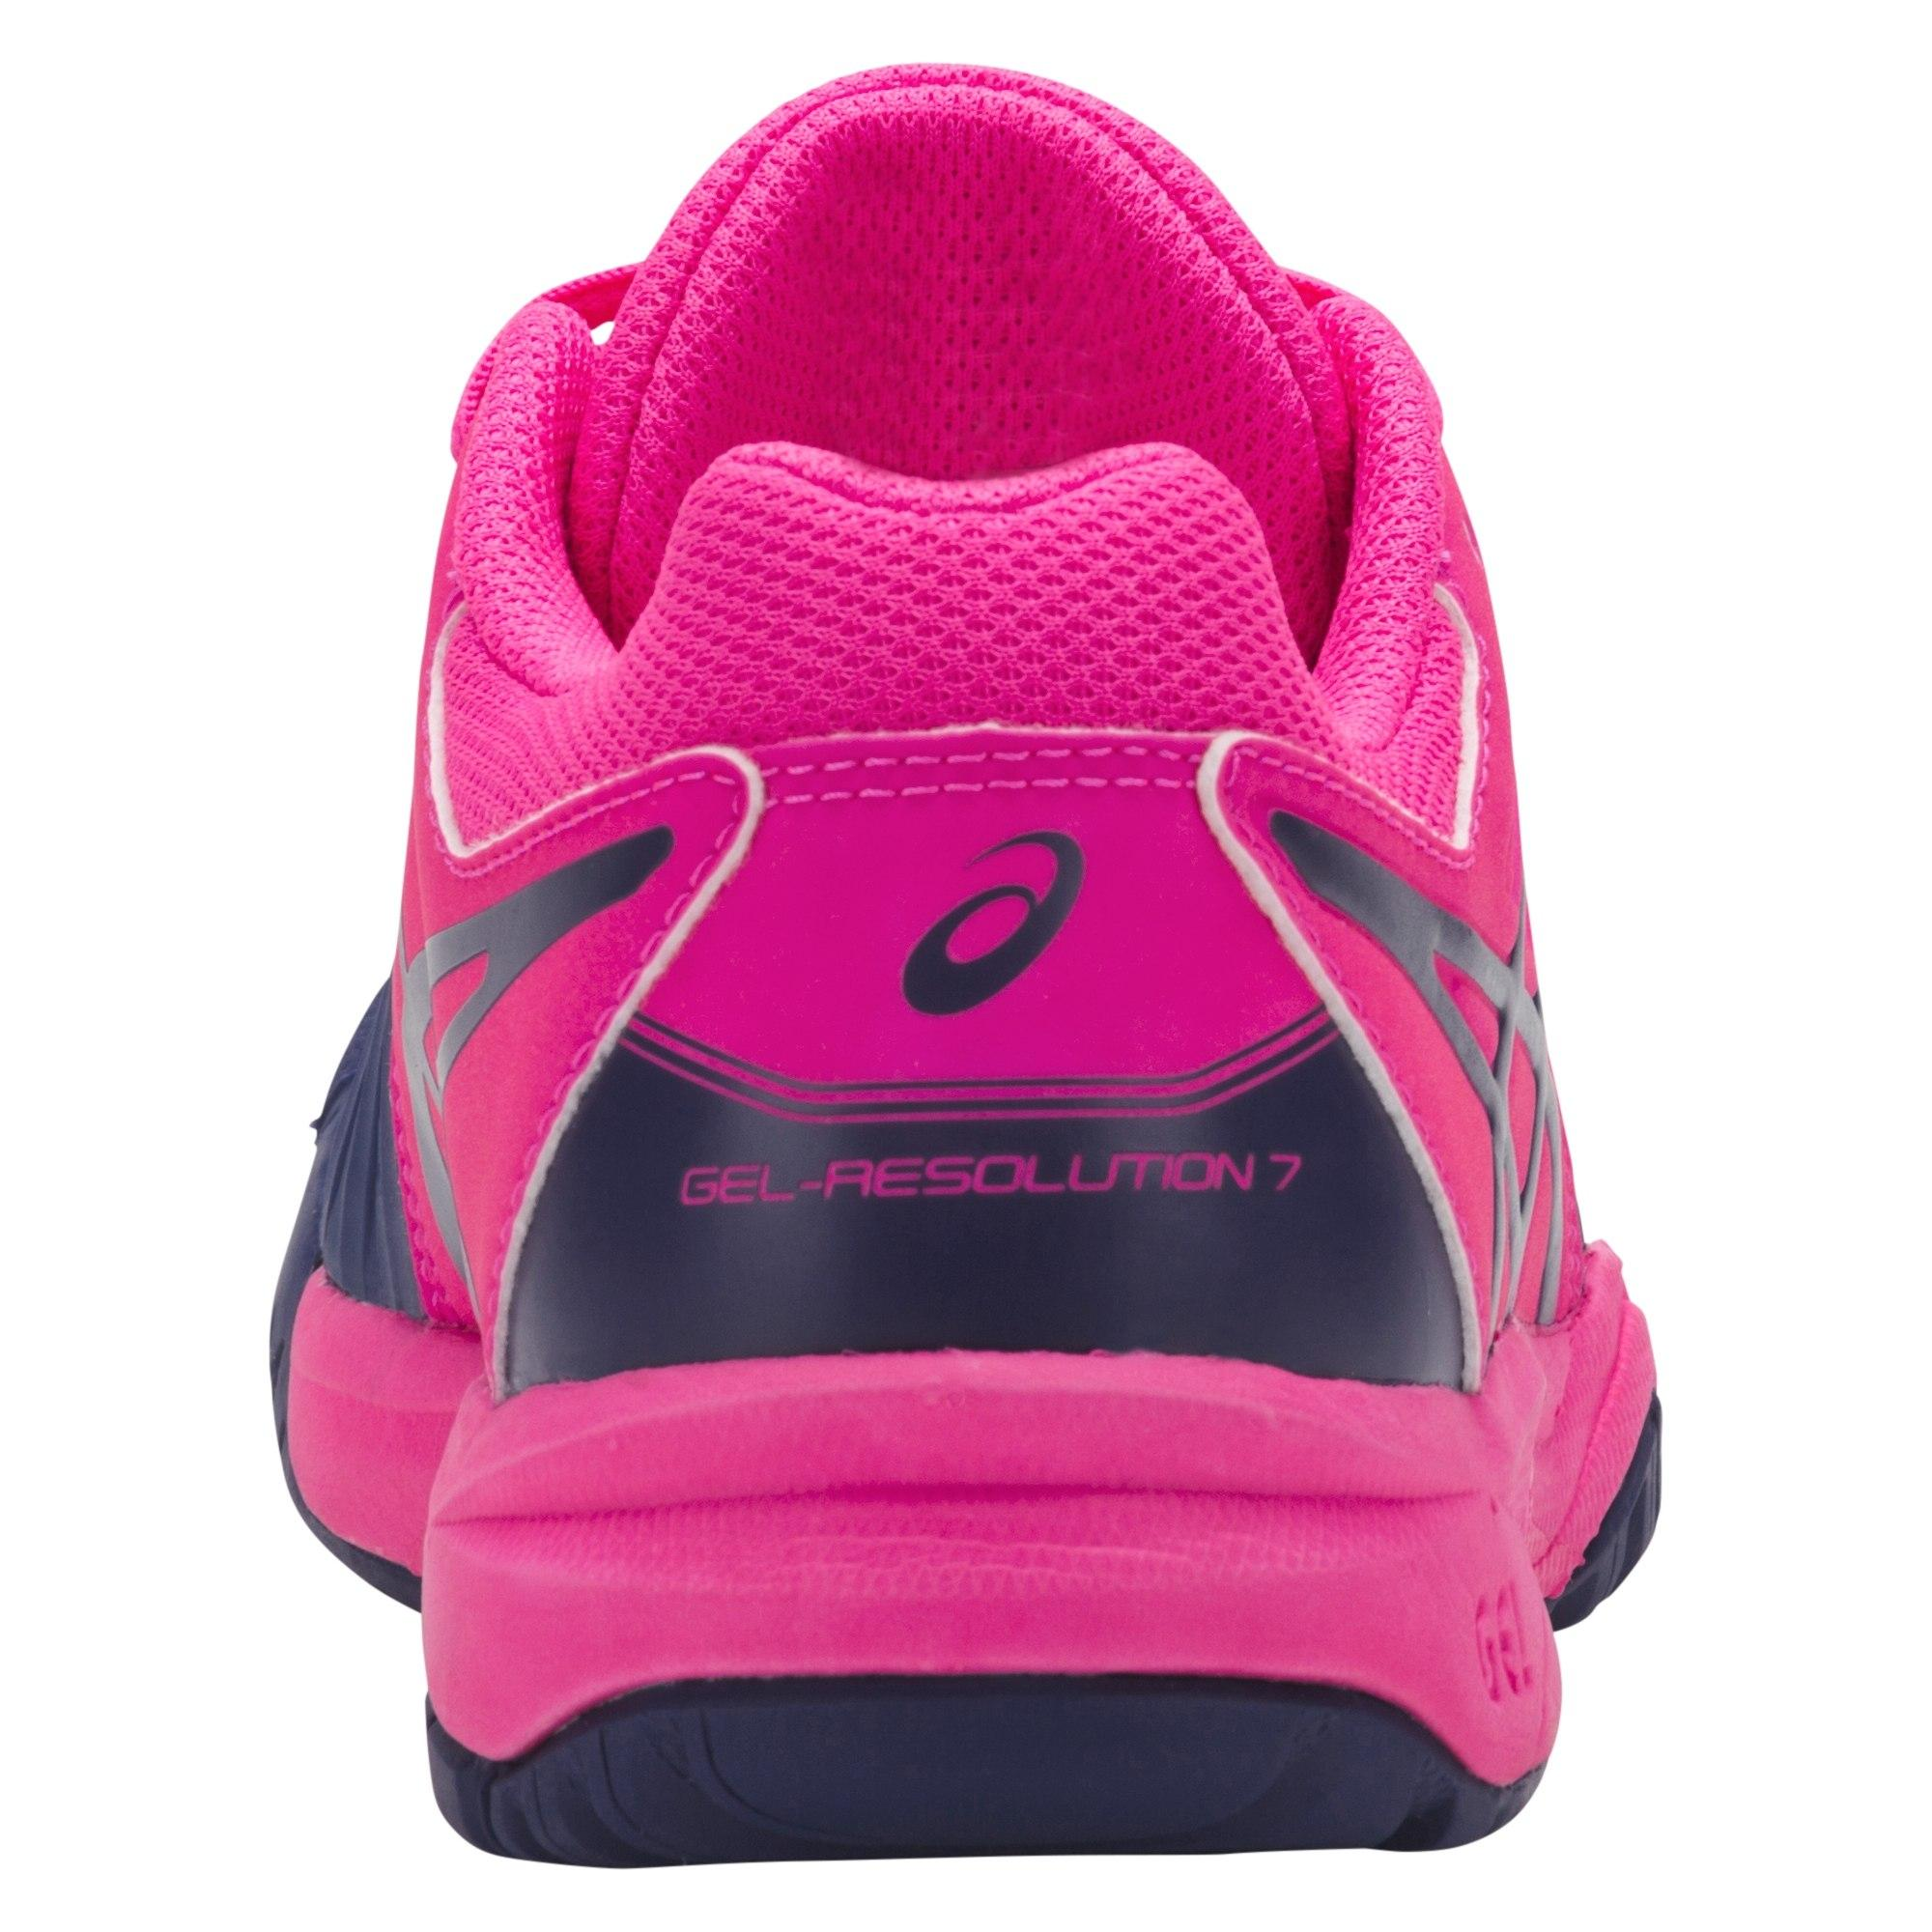 5bfff57de575 Asics Kids GEL-Resolution 7 GS Tennis Shoes - Pink Glow Blue Print ...